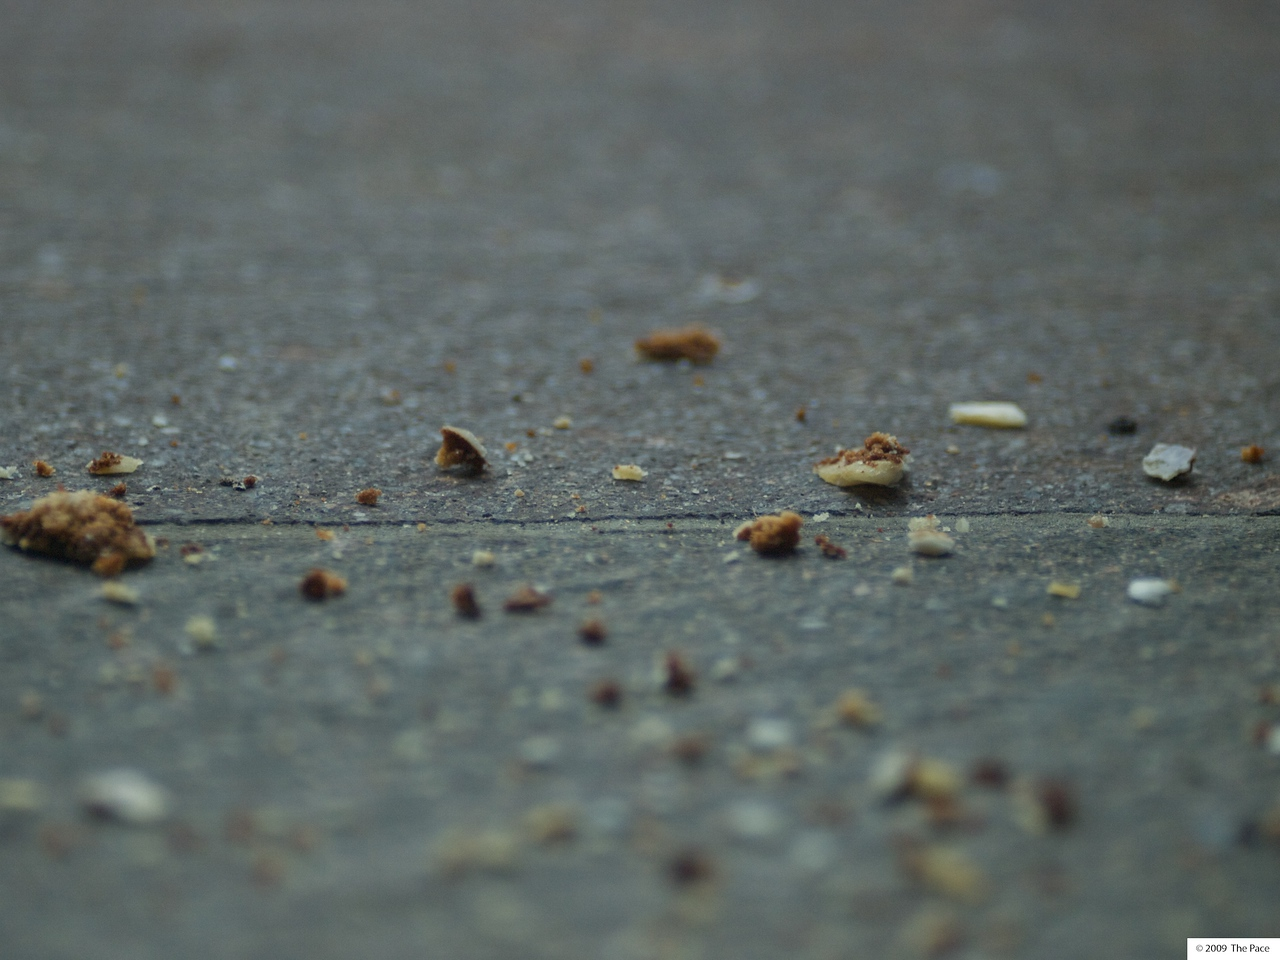 week 46 - Crumbs - zuiko 180/2